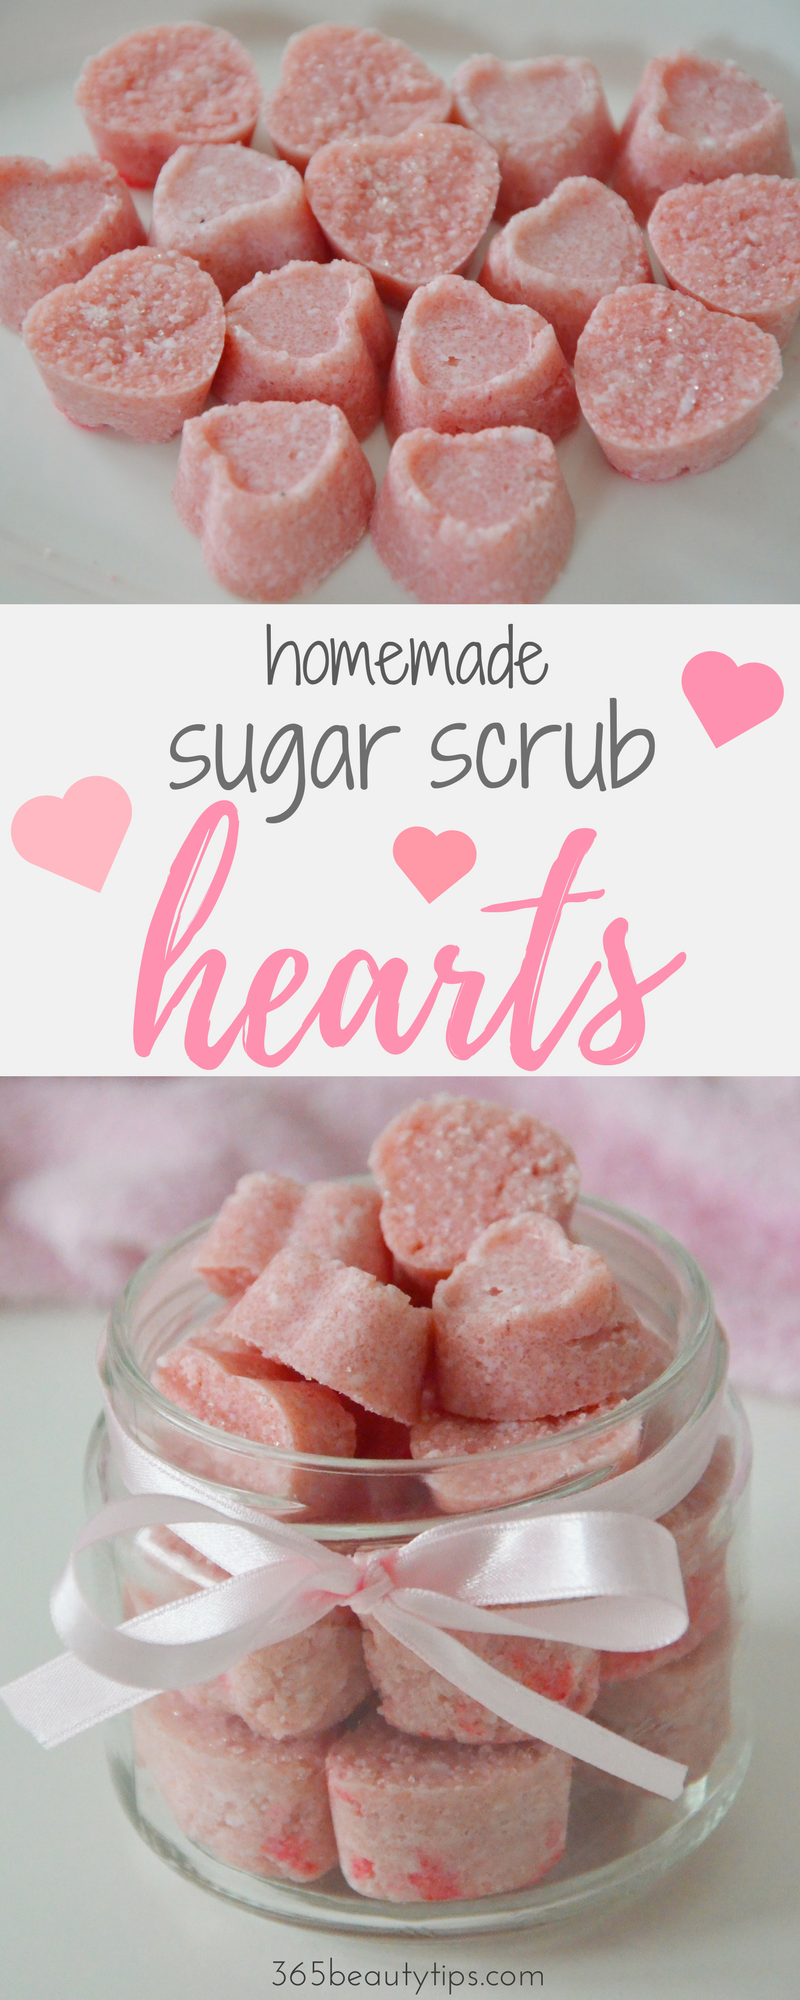 homemade-sugar-scrub-hearts-365-beauty-tips